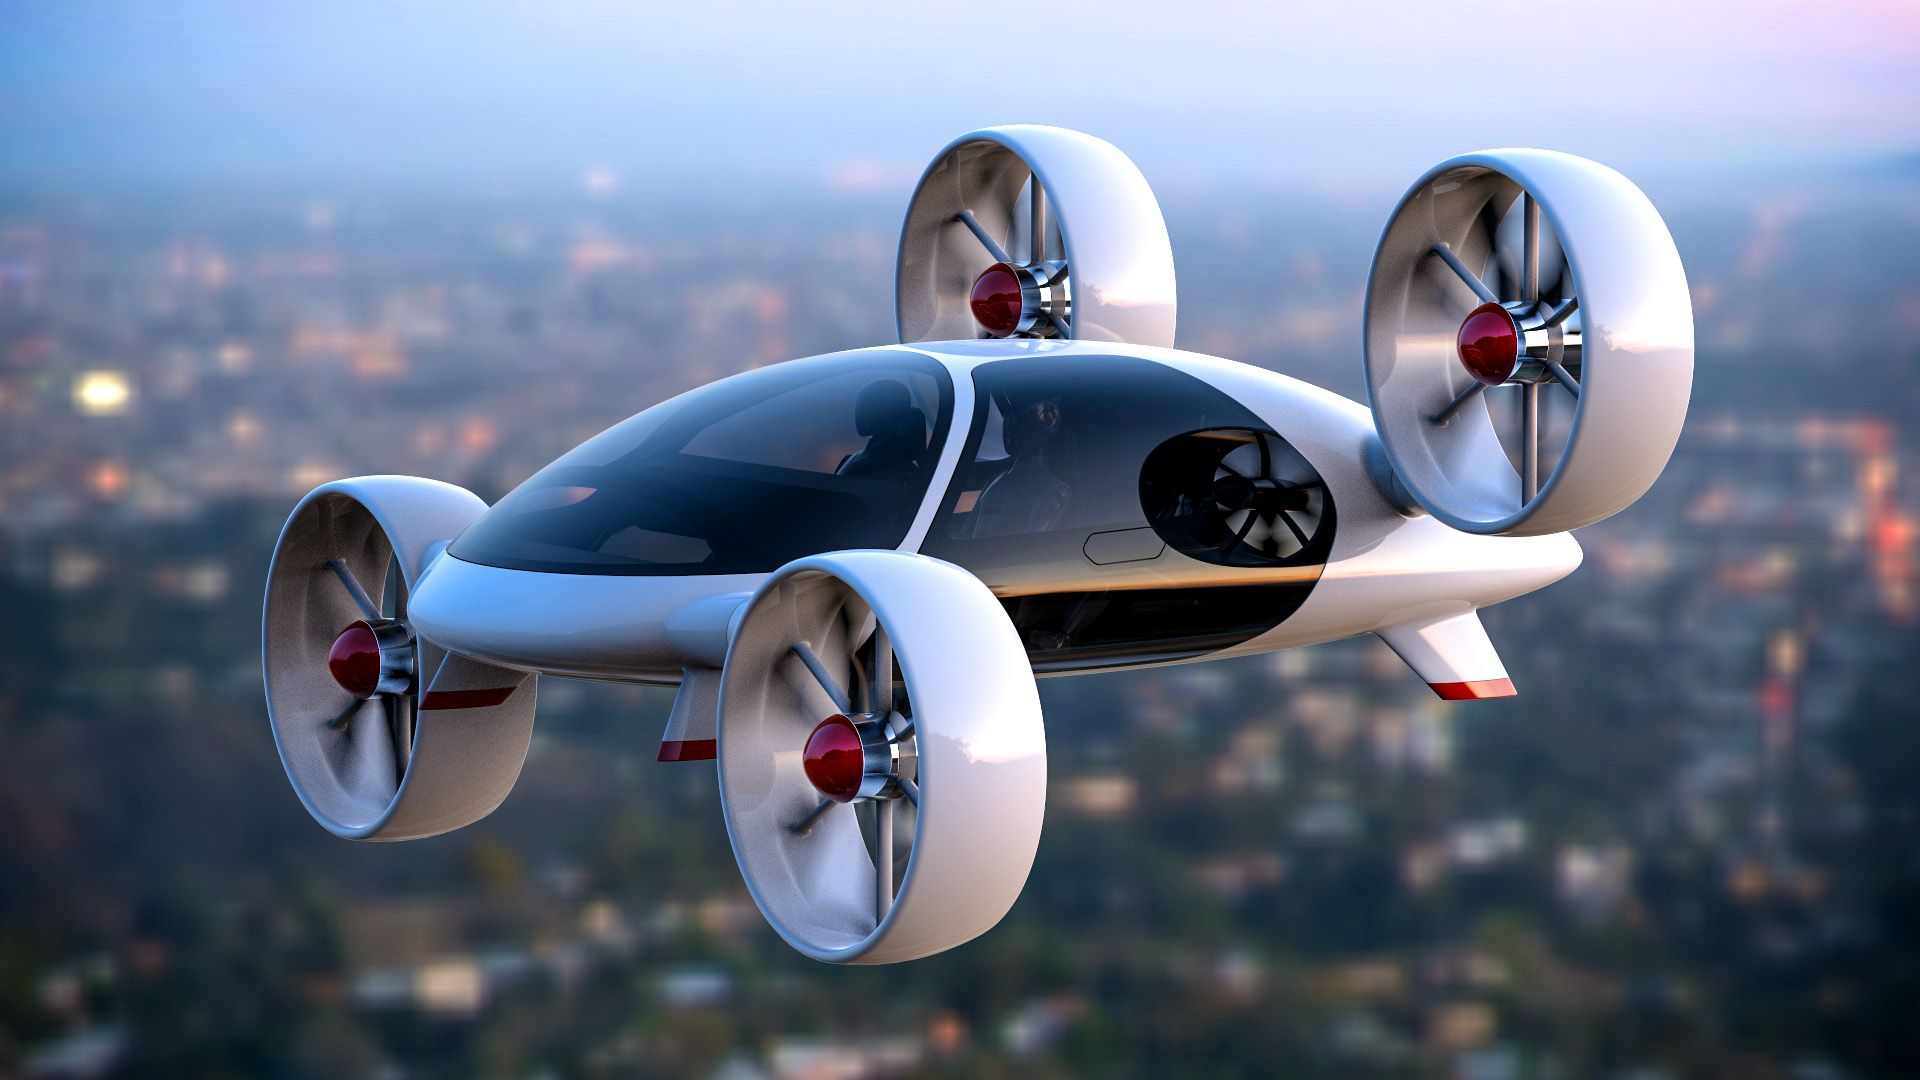 Most of the Latest Technology in the World Flying car